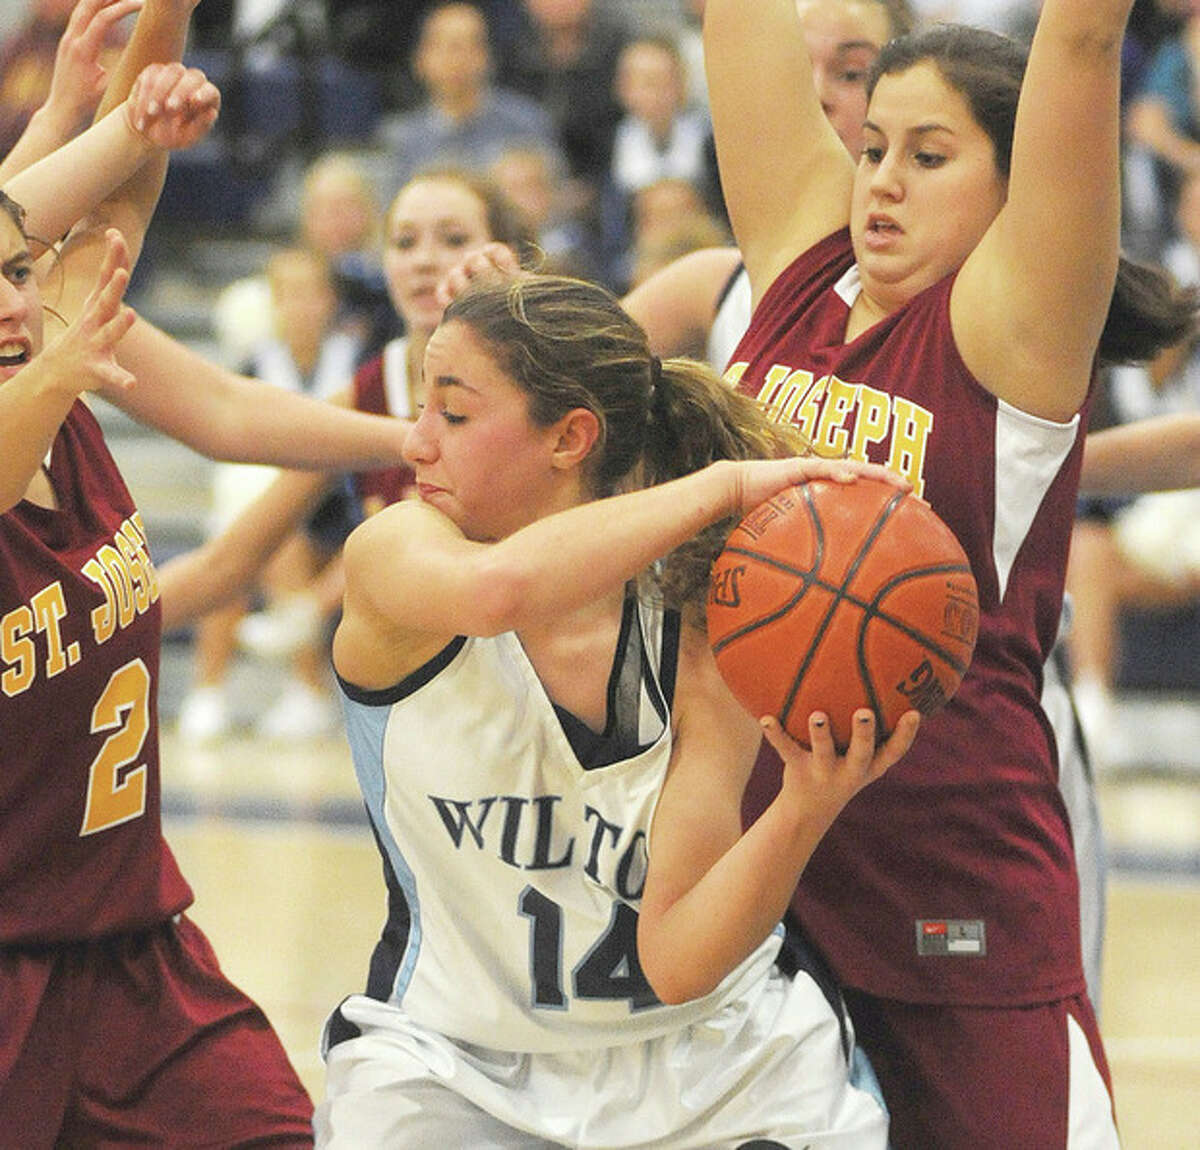 Hour Photo/John Nash - Wilton's Alyssa Malvarosa finds herself surrounded by St. Joseph players as she protects the ball after grabbing an offensive rebound during the second half of Tuesday's game.